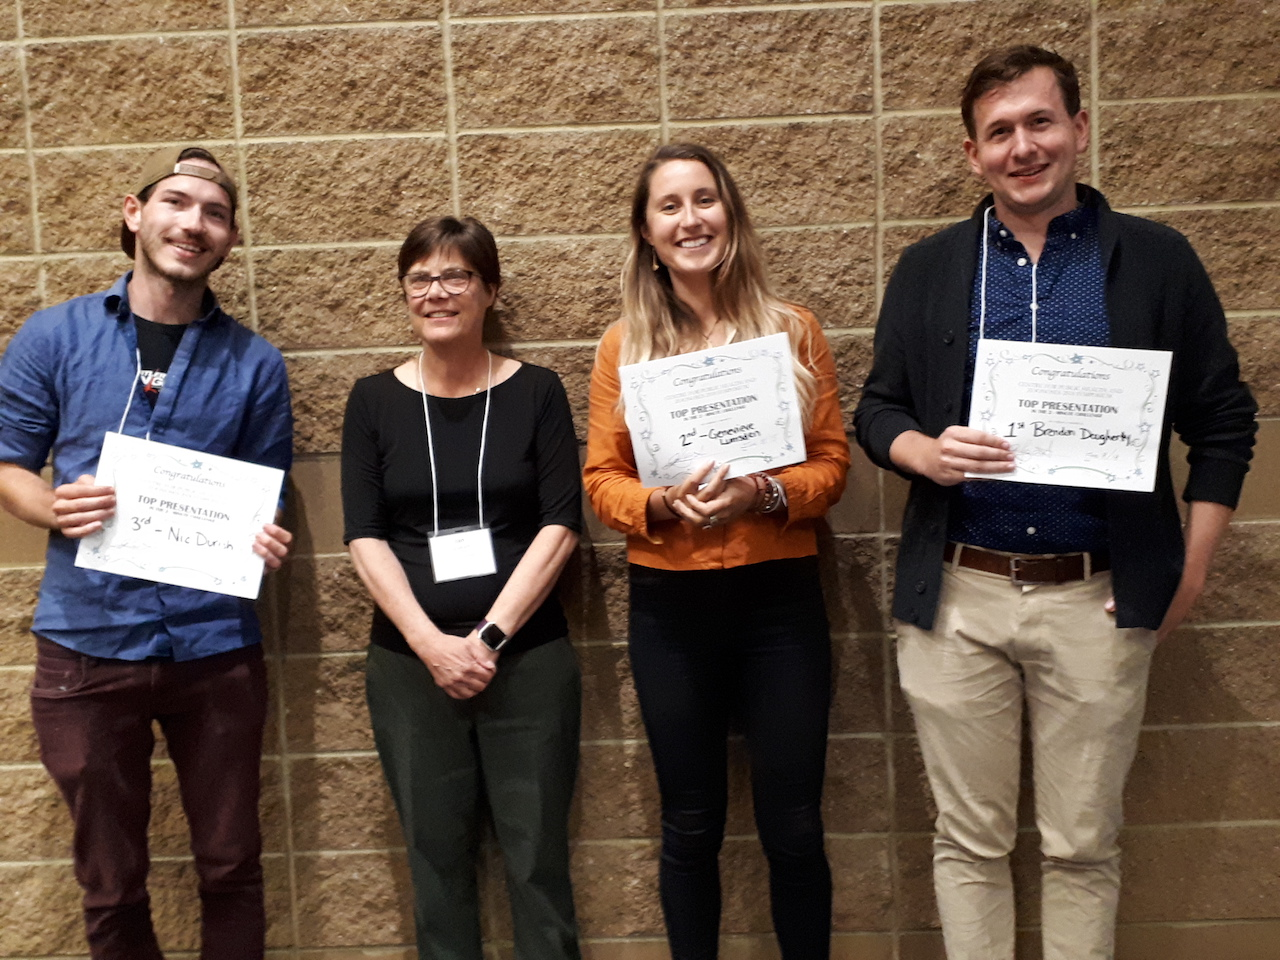 CPHAZ Symposirum student winners